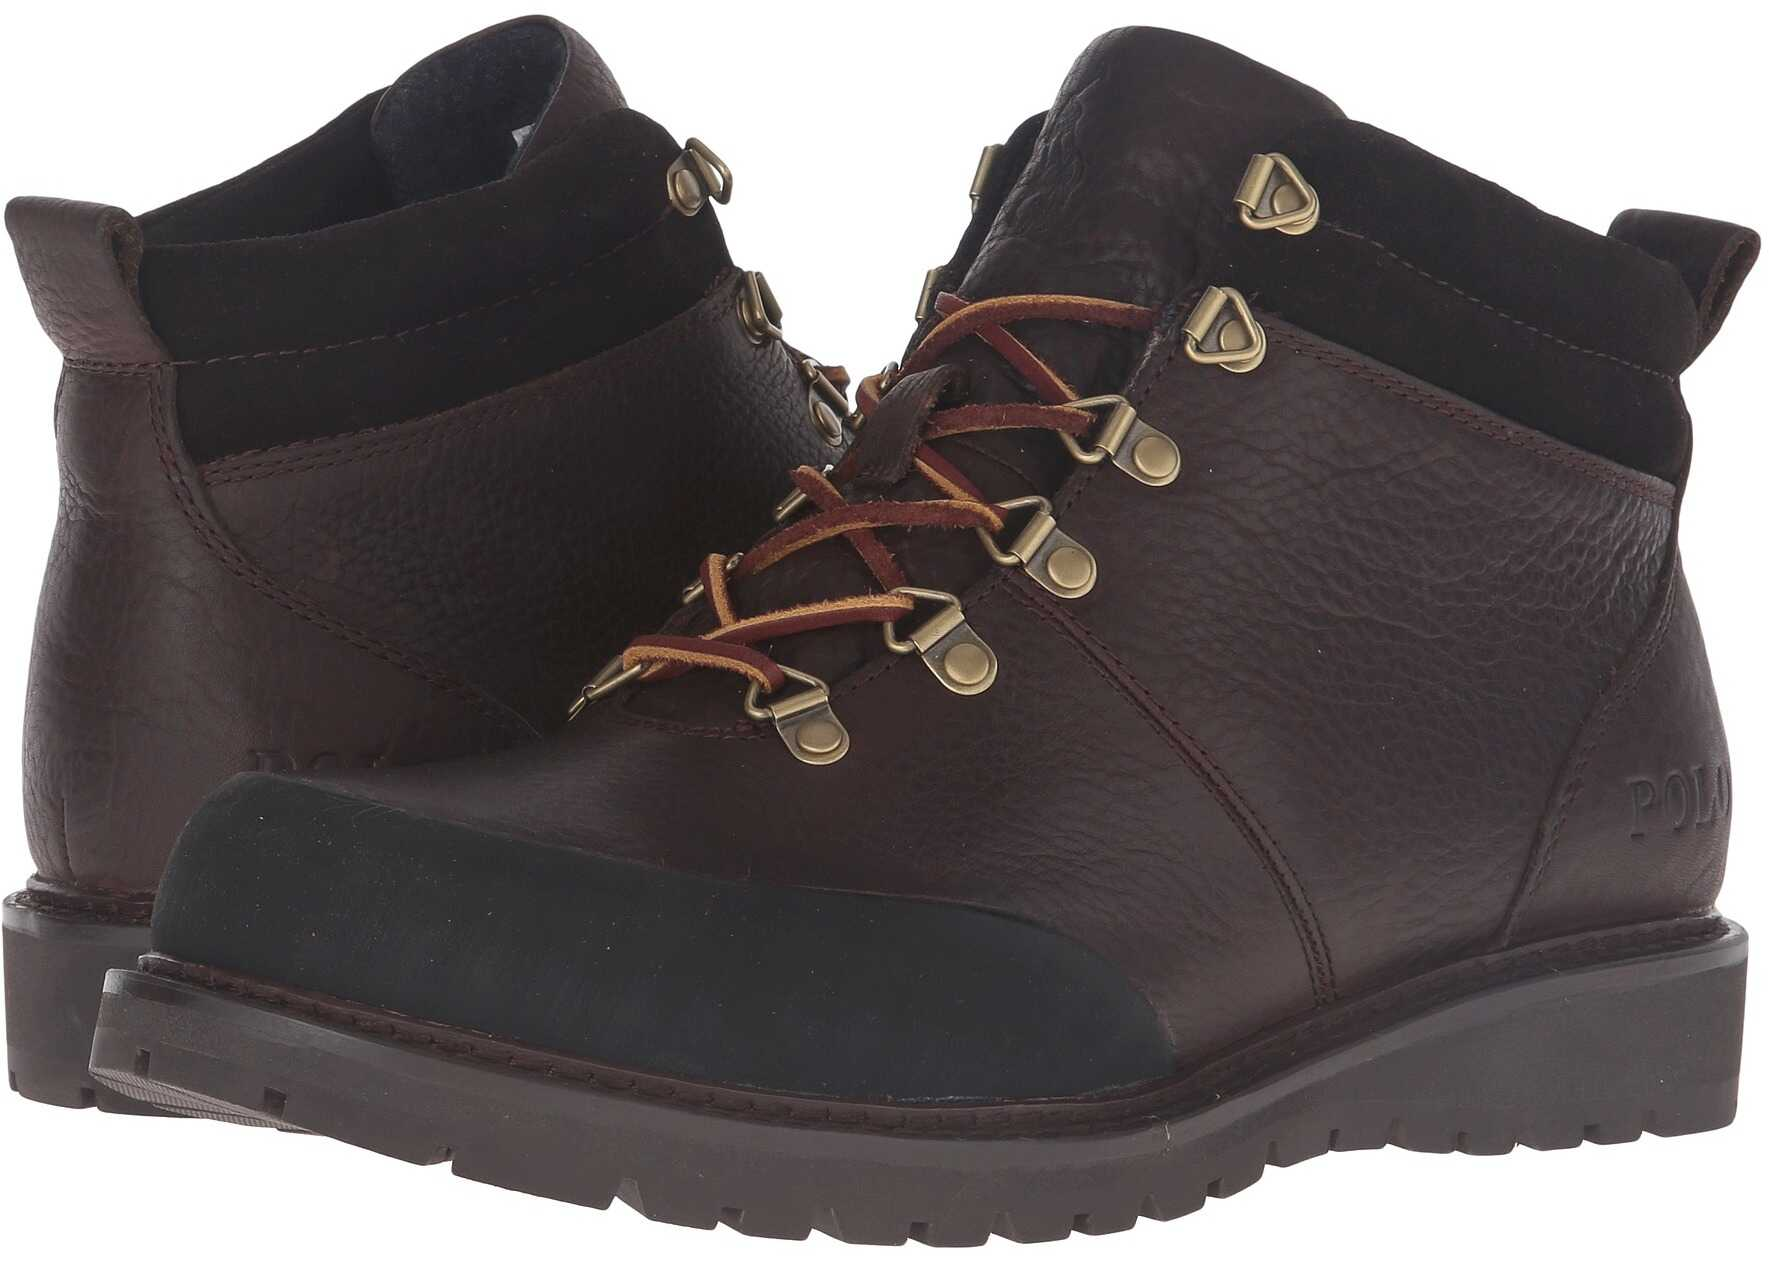 Ralph Lauren Wittier Dark Brown/Dark Brown